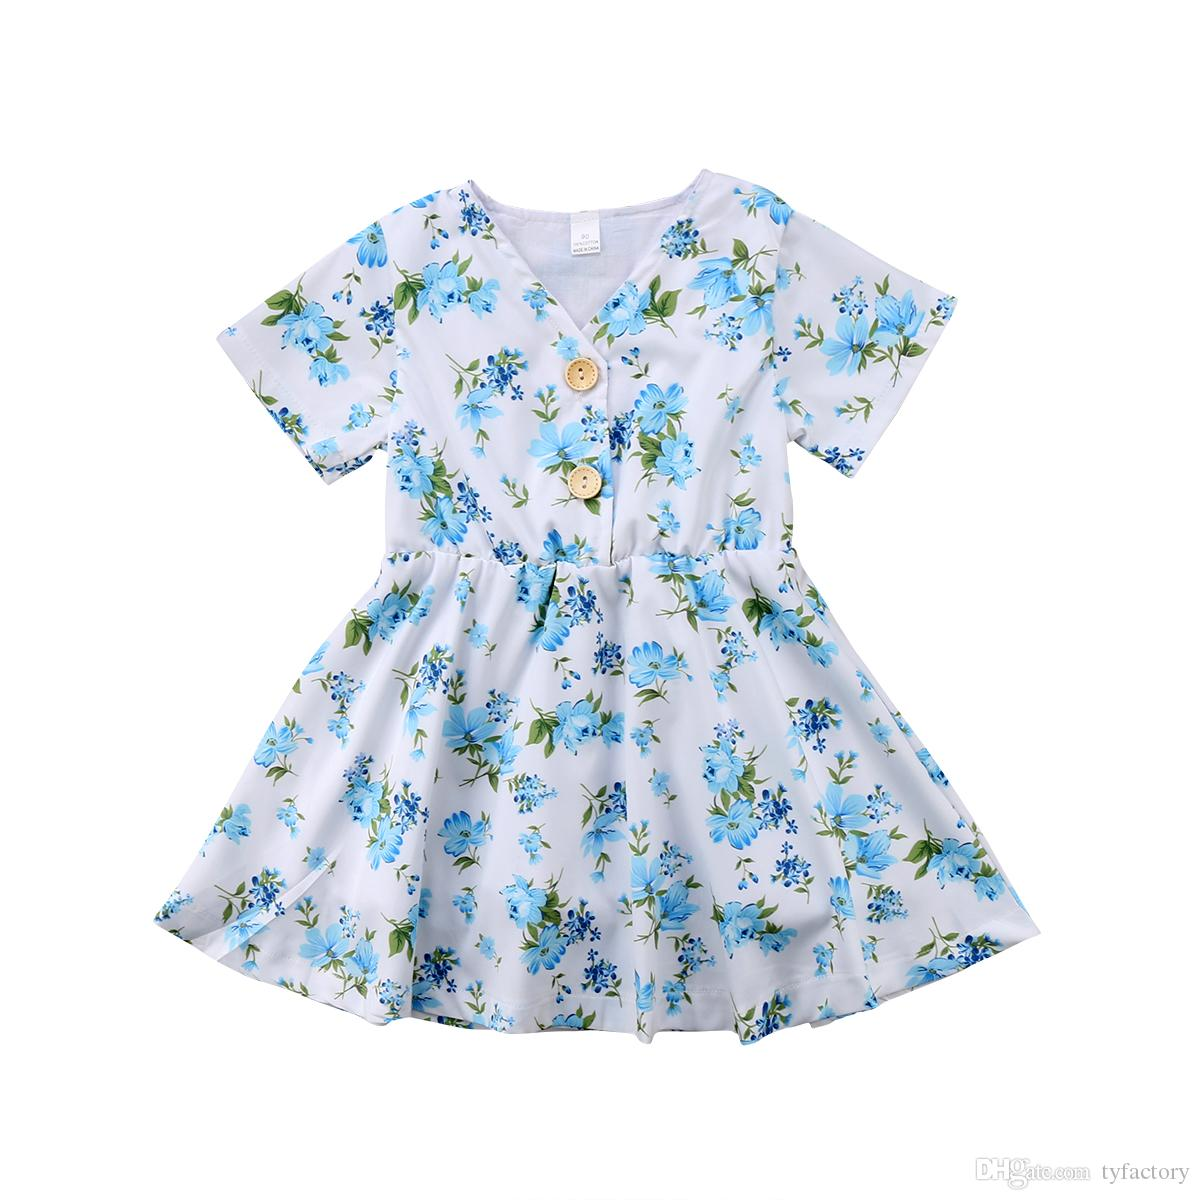 ab0a9b8cc 2019 Floral Baby Girls Princess Tutu Dresses Blue Flower Buttons Girl  Boutique Dress Clothing Toddler Clothes Party Wedding Dresses Kid Clothes  From ...